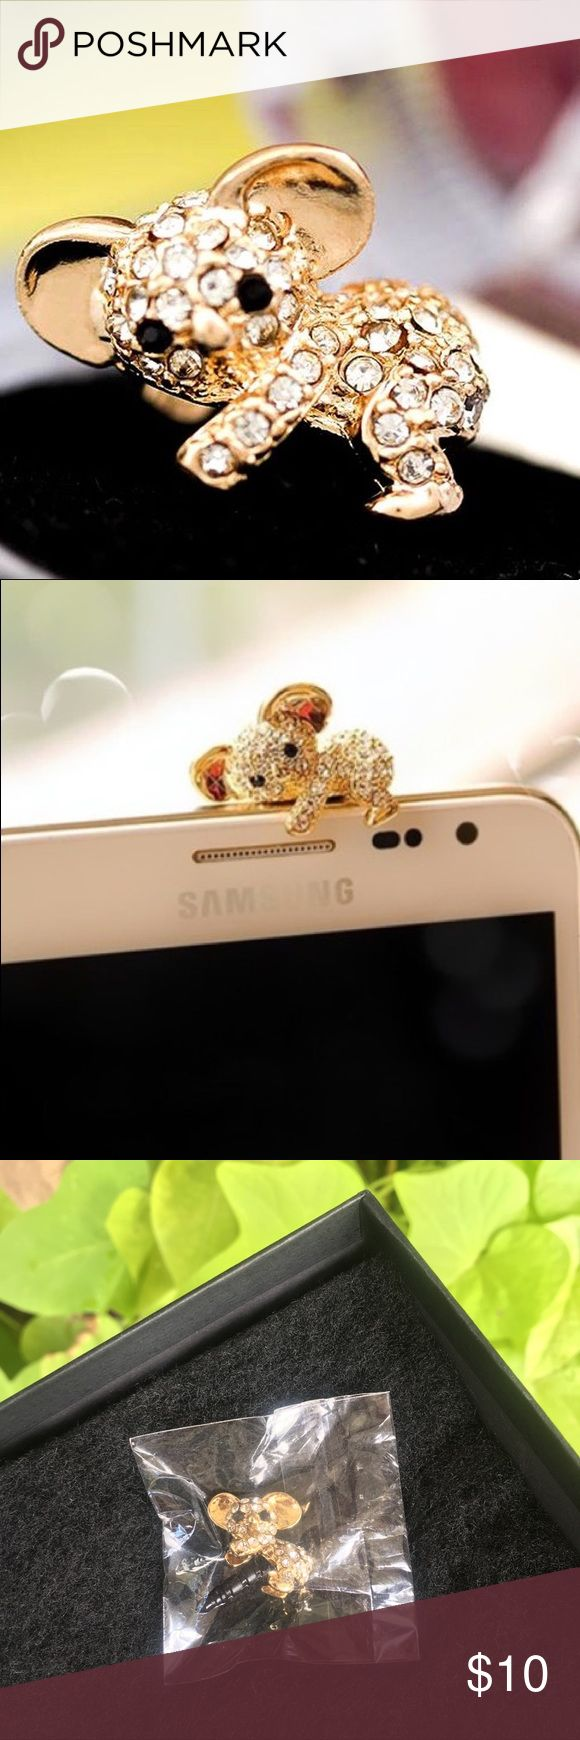 Cute koala anti-dust plug for ear jack 🐨 Adorable gold koala with rhinestones anti dust head phone jack plug. Still in package. Perfect added touch to any iPhone, android, Samsung, or iPad. 📱 offers welcome. 😊 Other